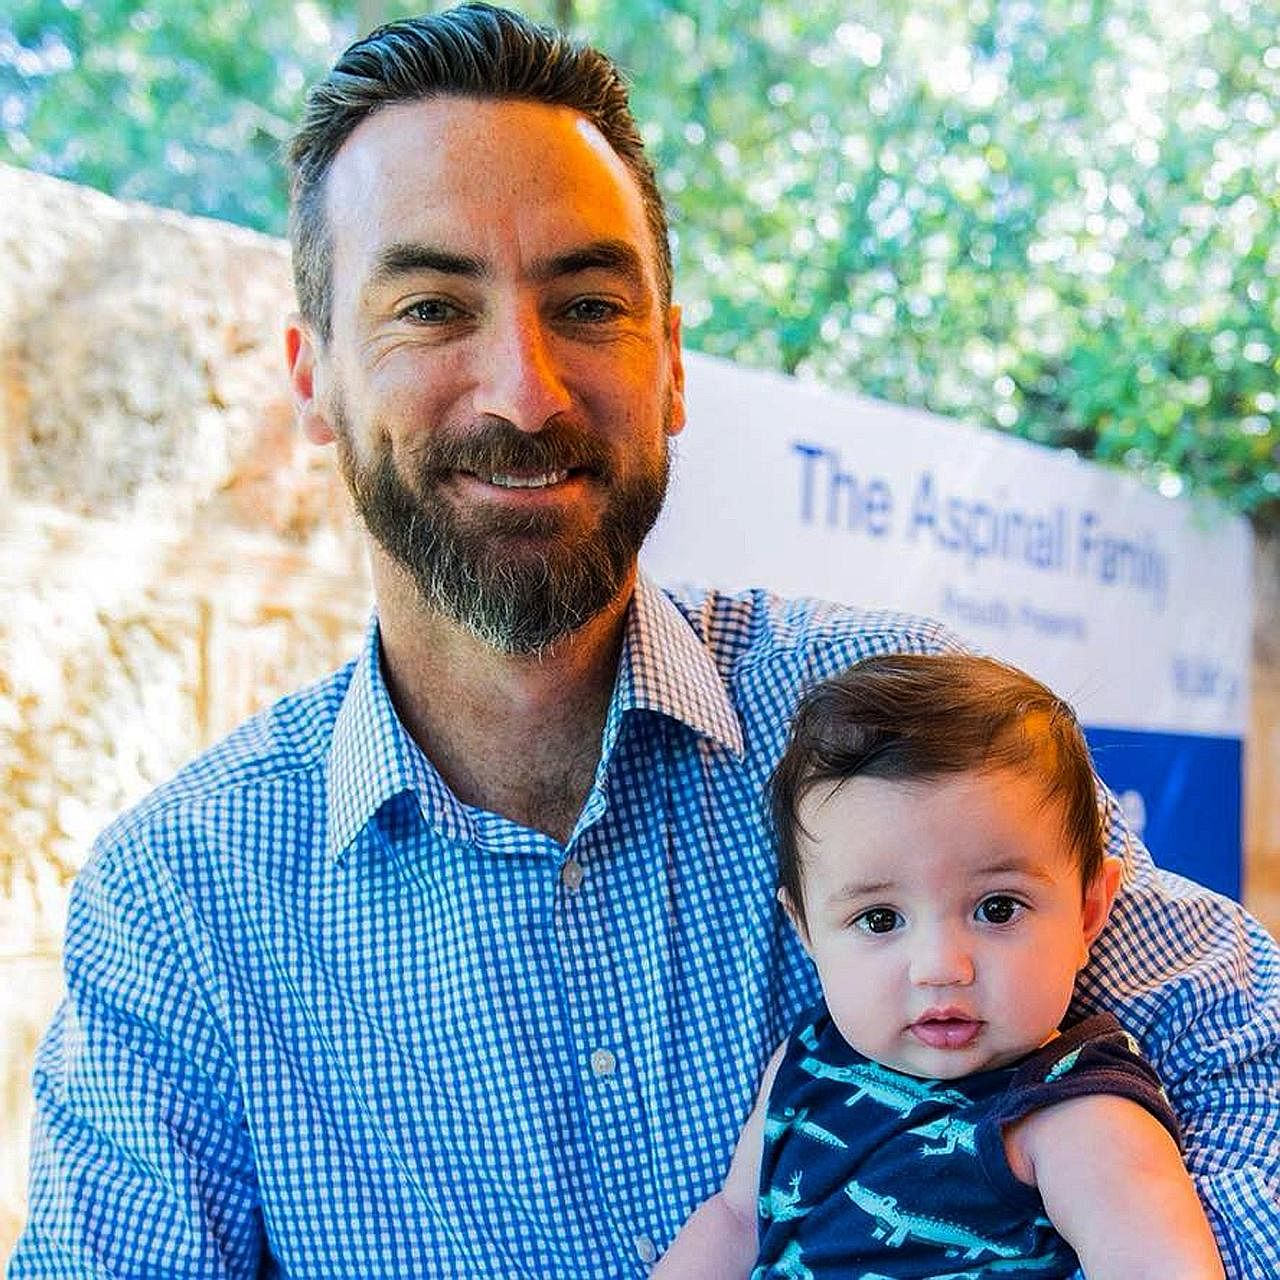 Opposition Labor party's Mr Tim Hammond with his seven-month-old son Tully. He said video calls did not make up for the regular absence from his three young children.